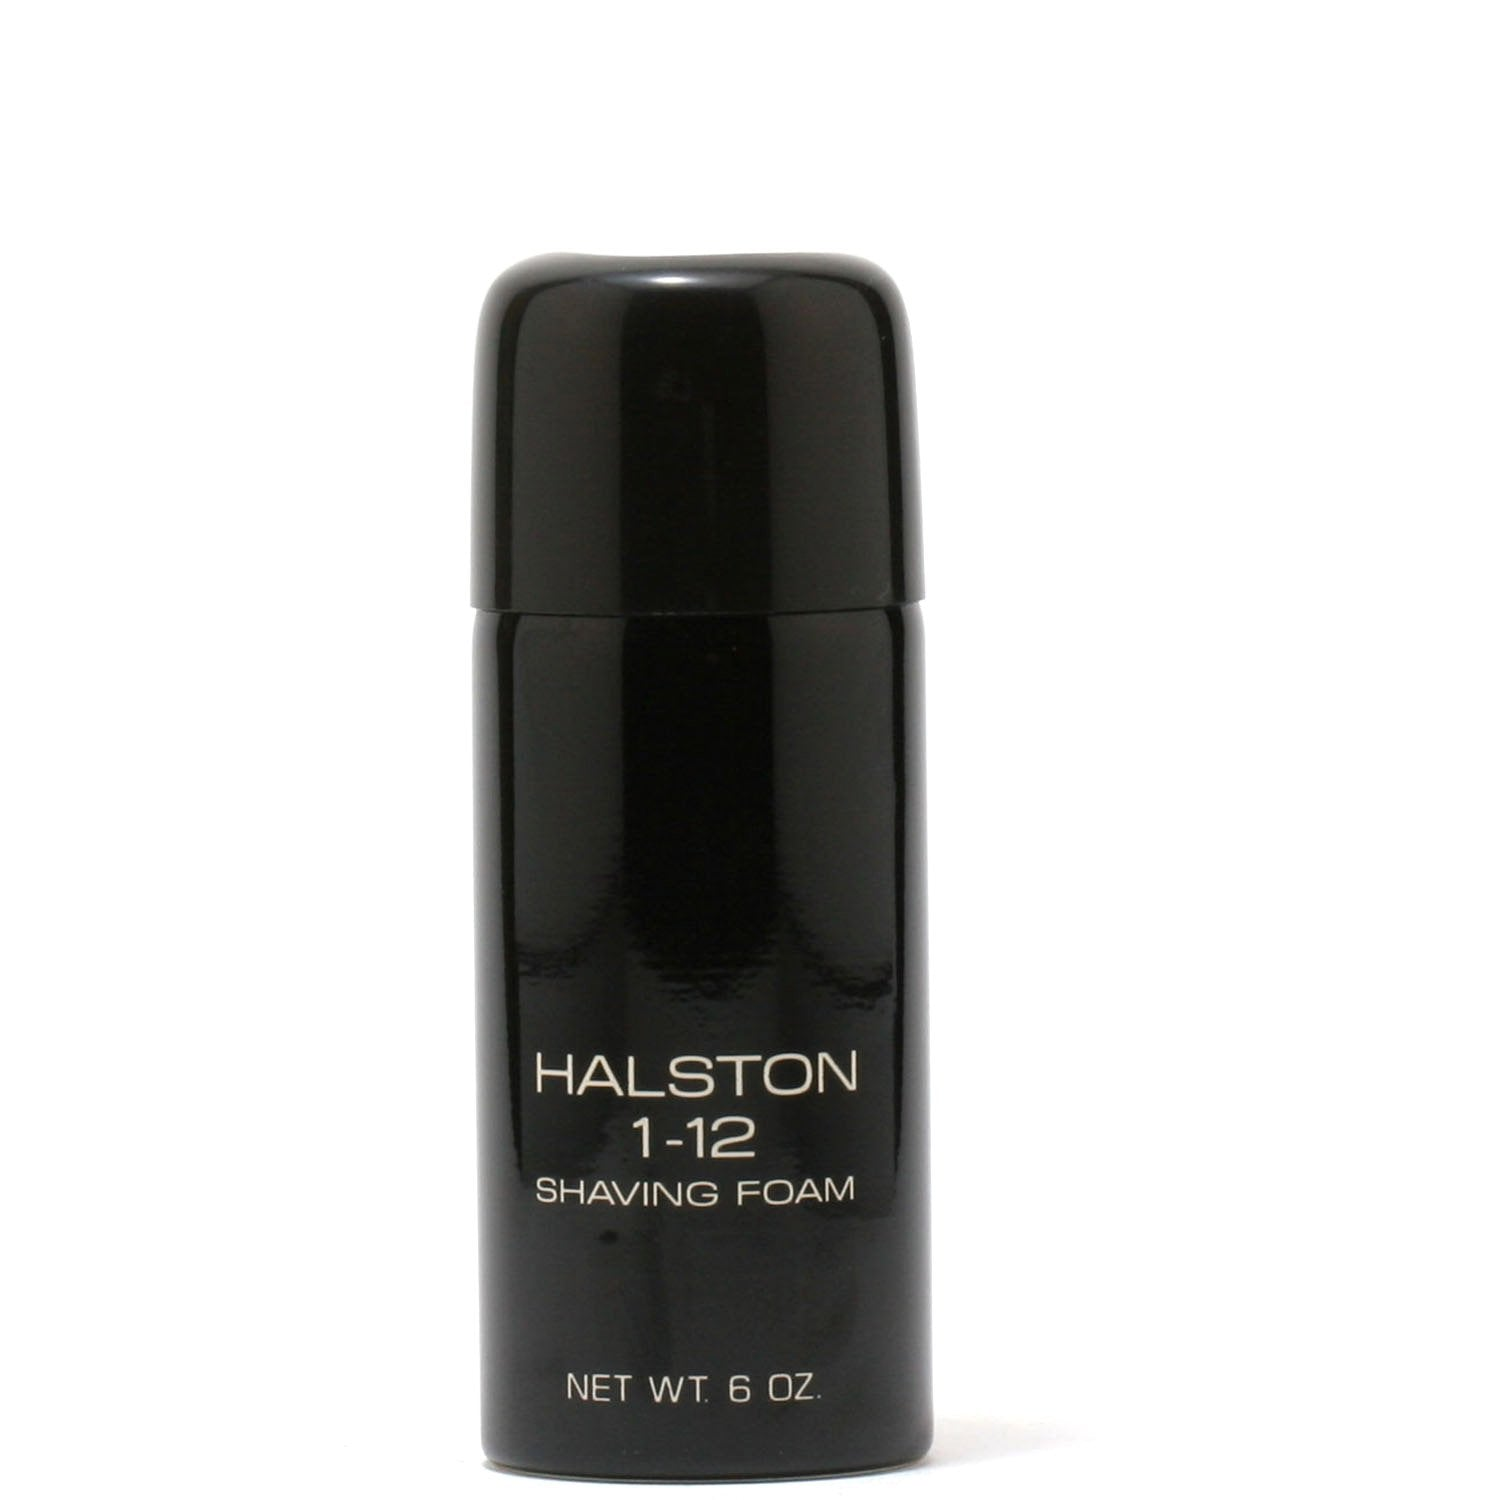 Bath And Body - HALSTON 1-12 FOR MEN BY HALSTON - SHAVING FOAM, 6.0 OZ